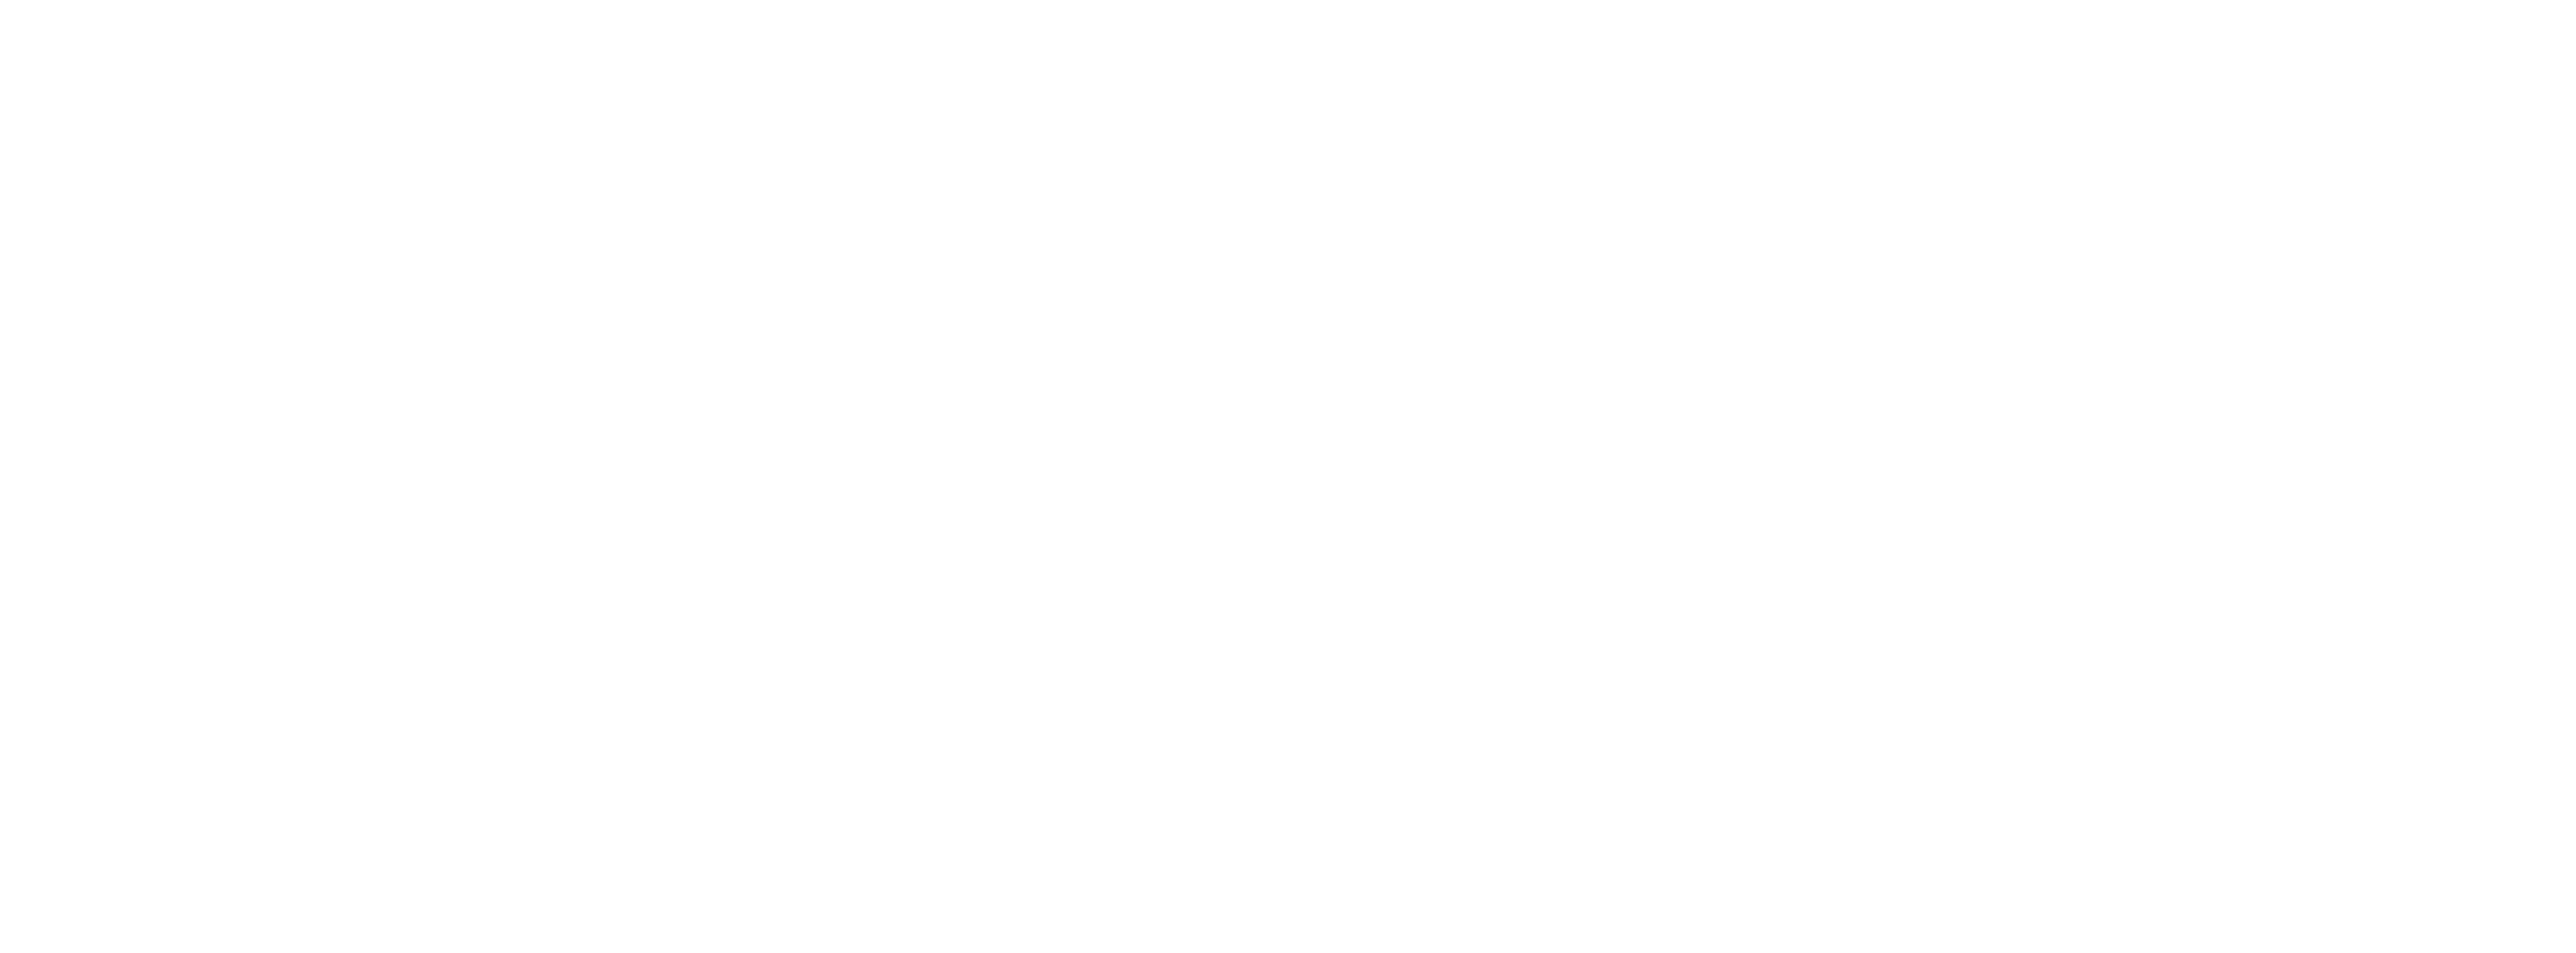 Hummings full logo